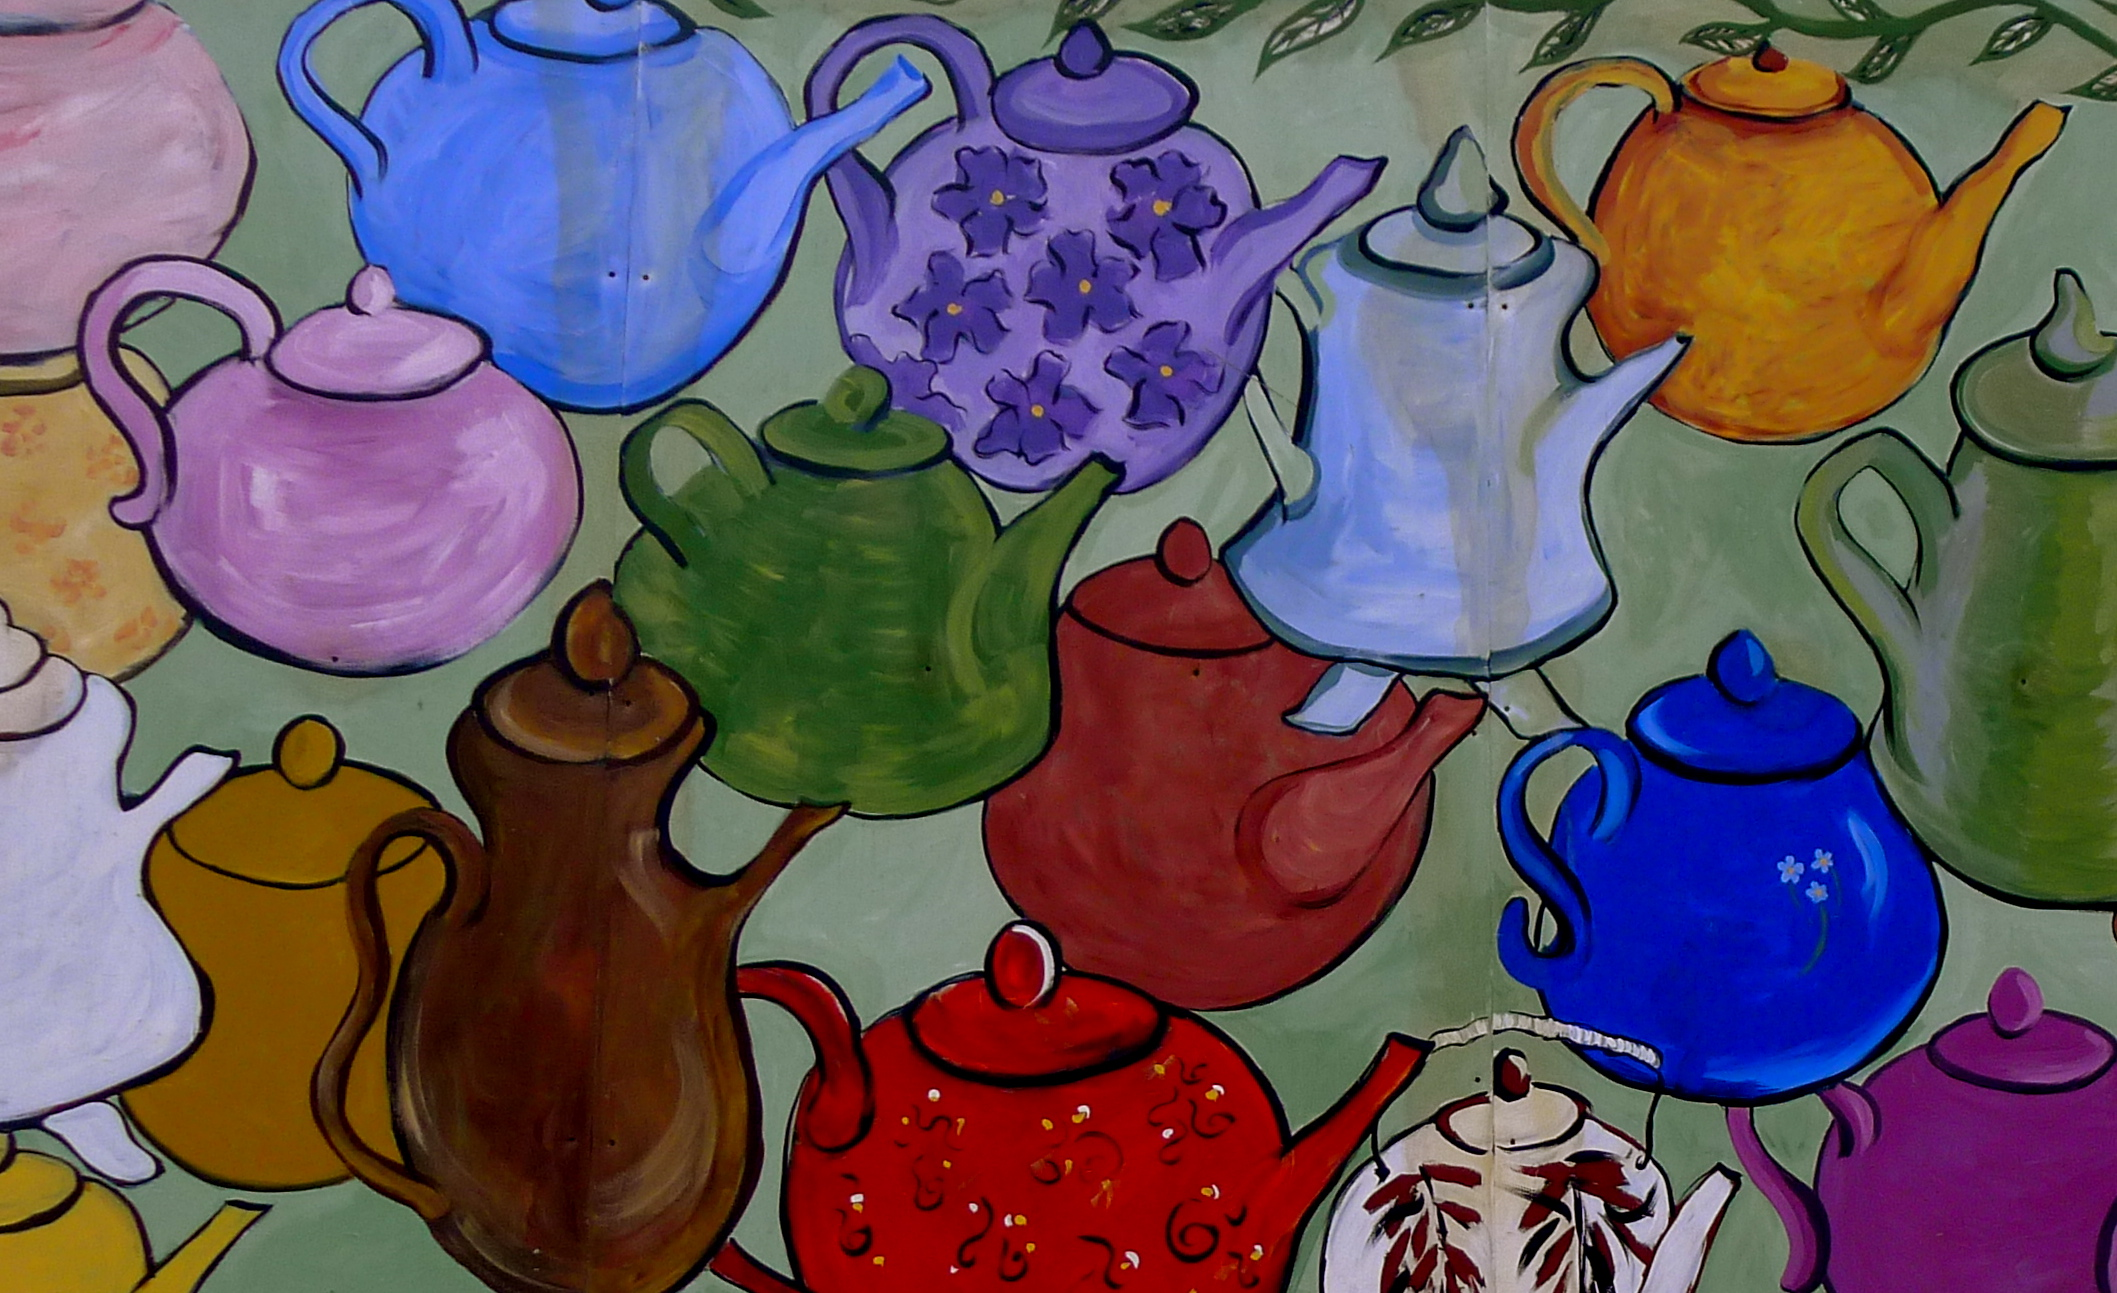 Color art printing anchorage - This Mural Of Tea Pots Covers One Side Of Kobuk Coffee Co In Downtown Anchorage It S Unexpected And Cheerful And Never Fails To Entice Me Into The